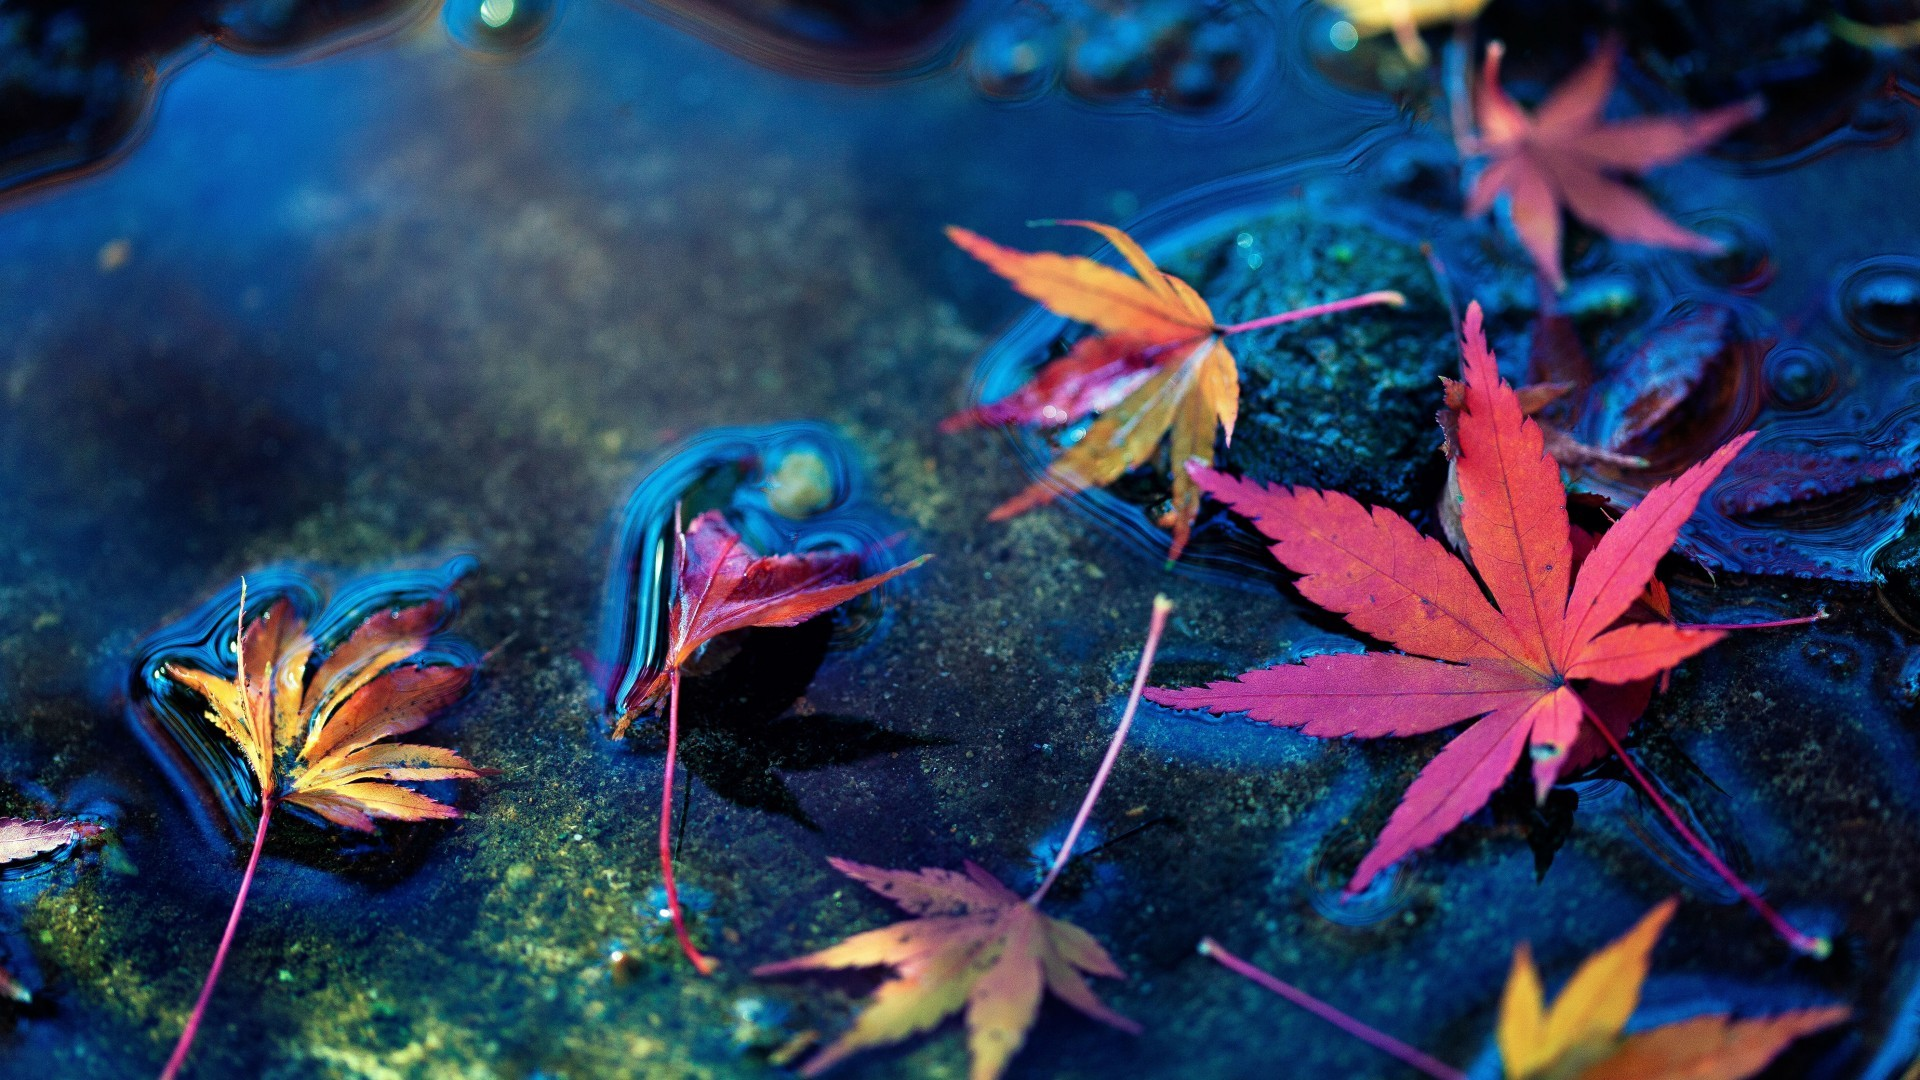 Autumn, Water, Maple Leaves - Beautiful Live Wallpaper Hd , HD Wallpaper & Backgrounds